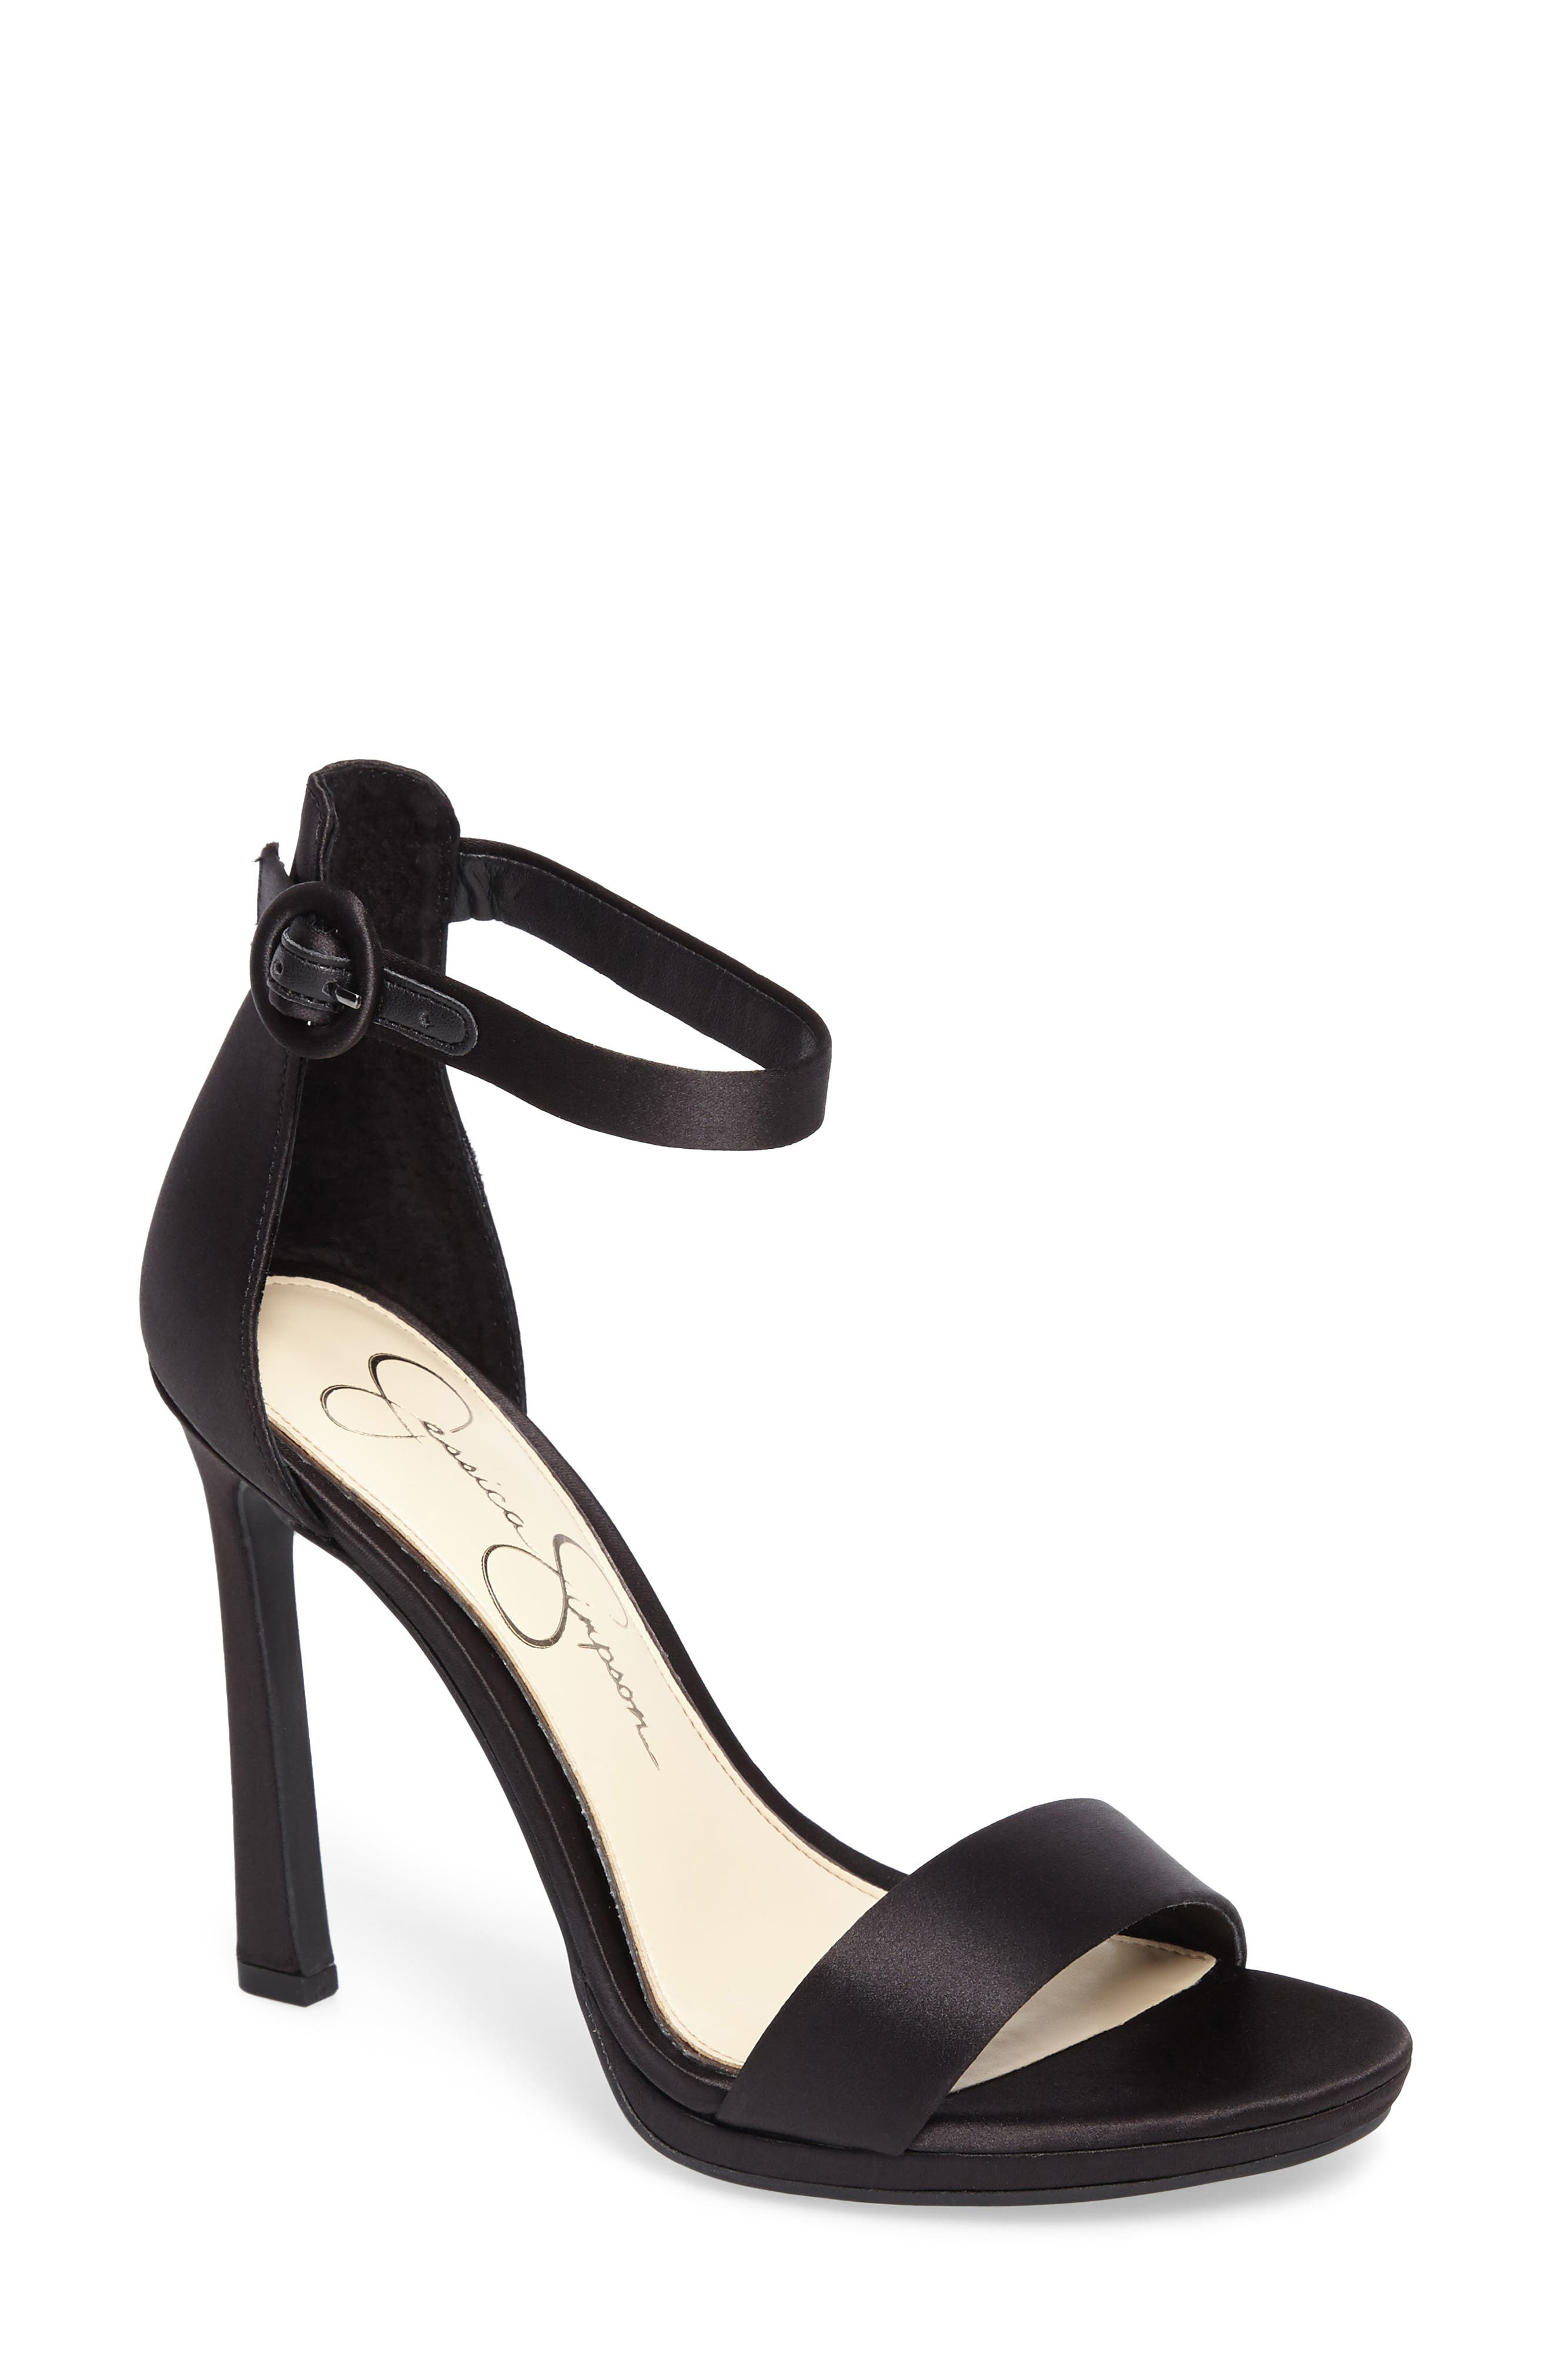 Alternate Image 1 Selected - Jessica Simpson Plemy Sandal (Women)